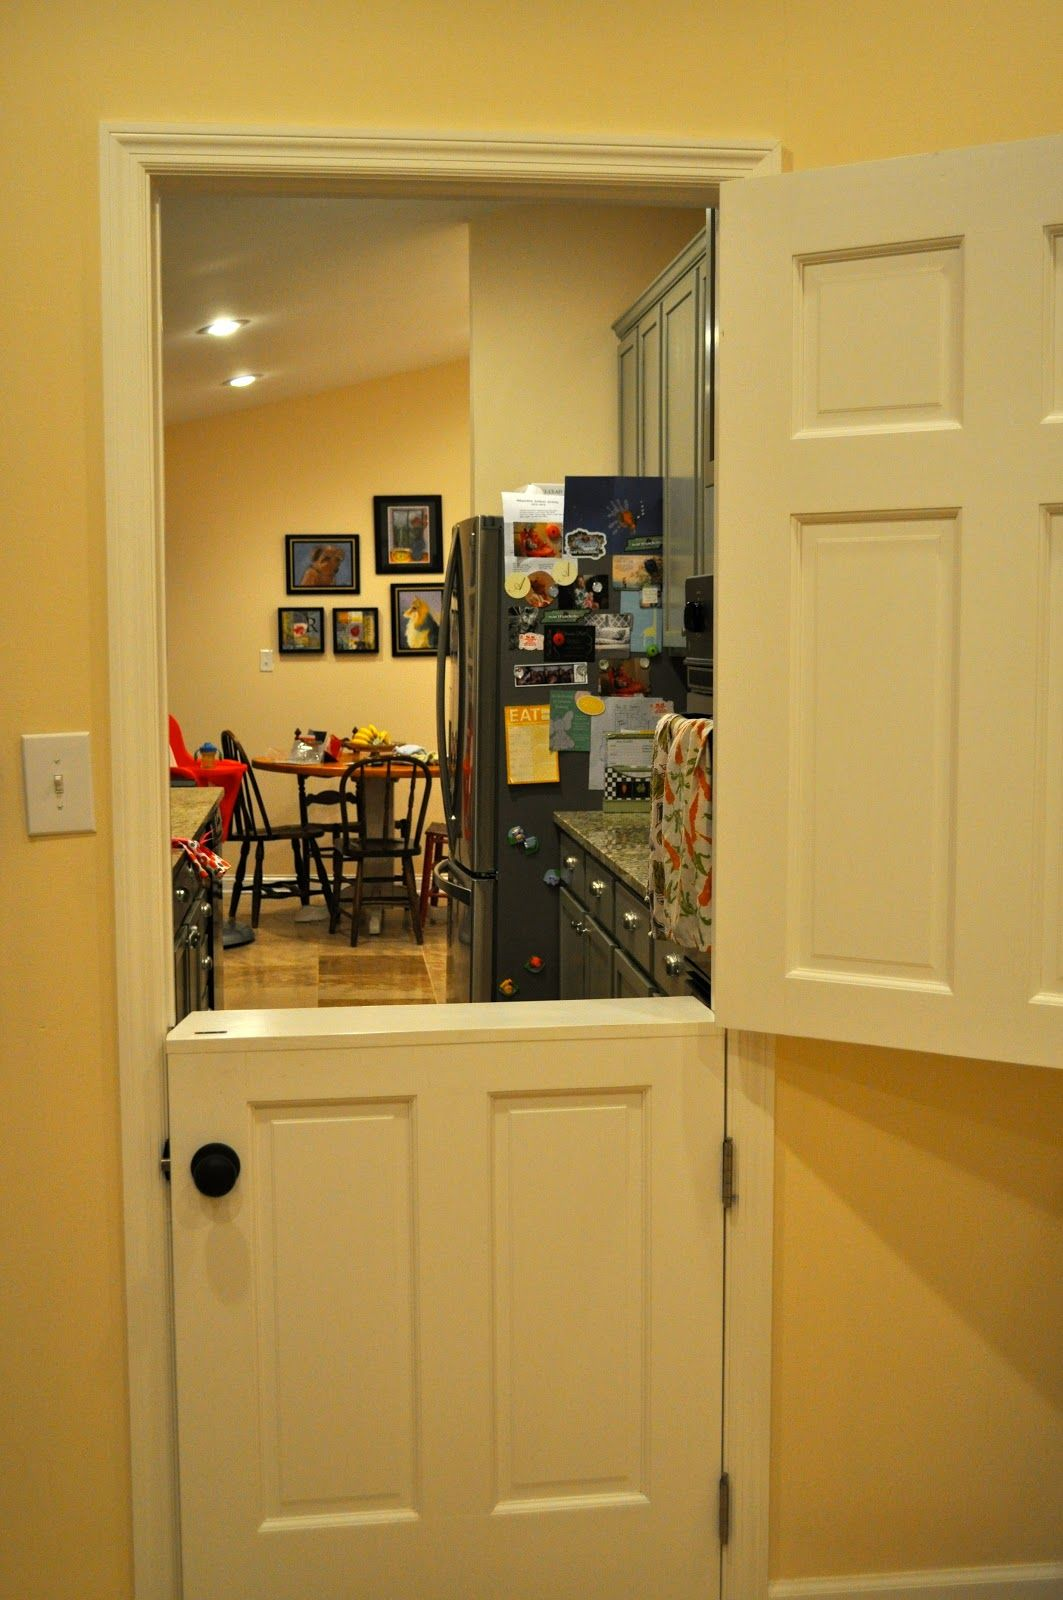 Standard Style Dutch Door For Kennel Room Dutch Door Interior Dutch Door Sale Interior